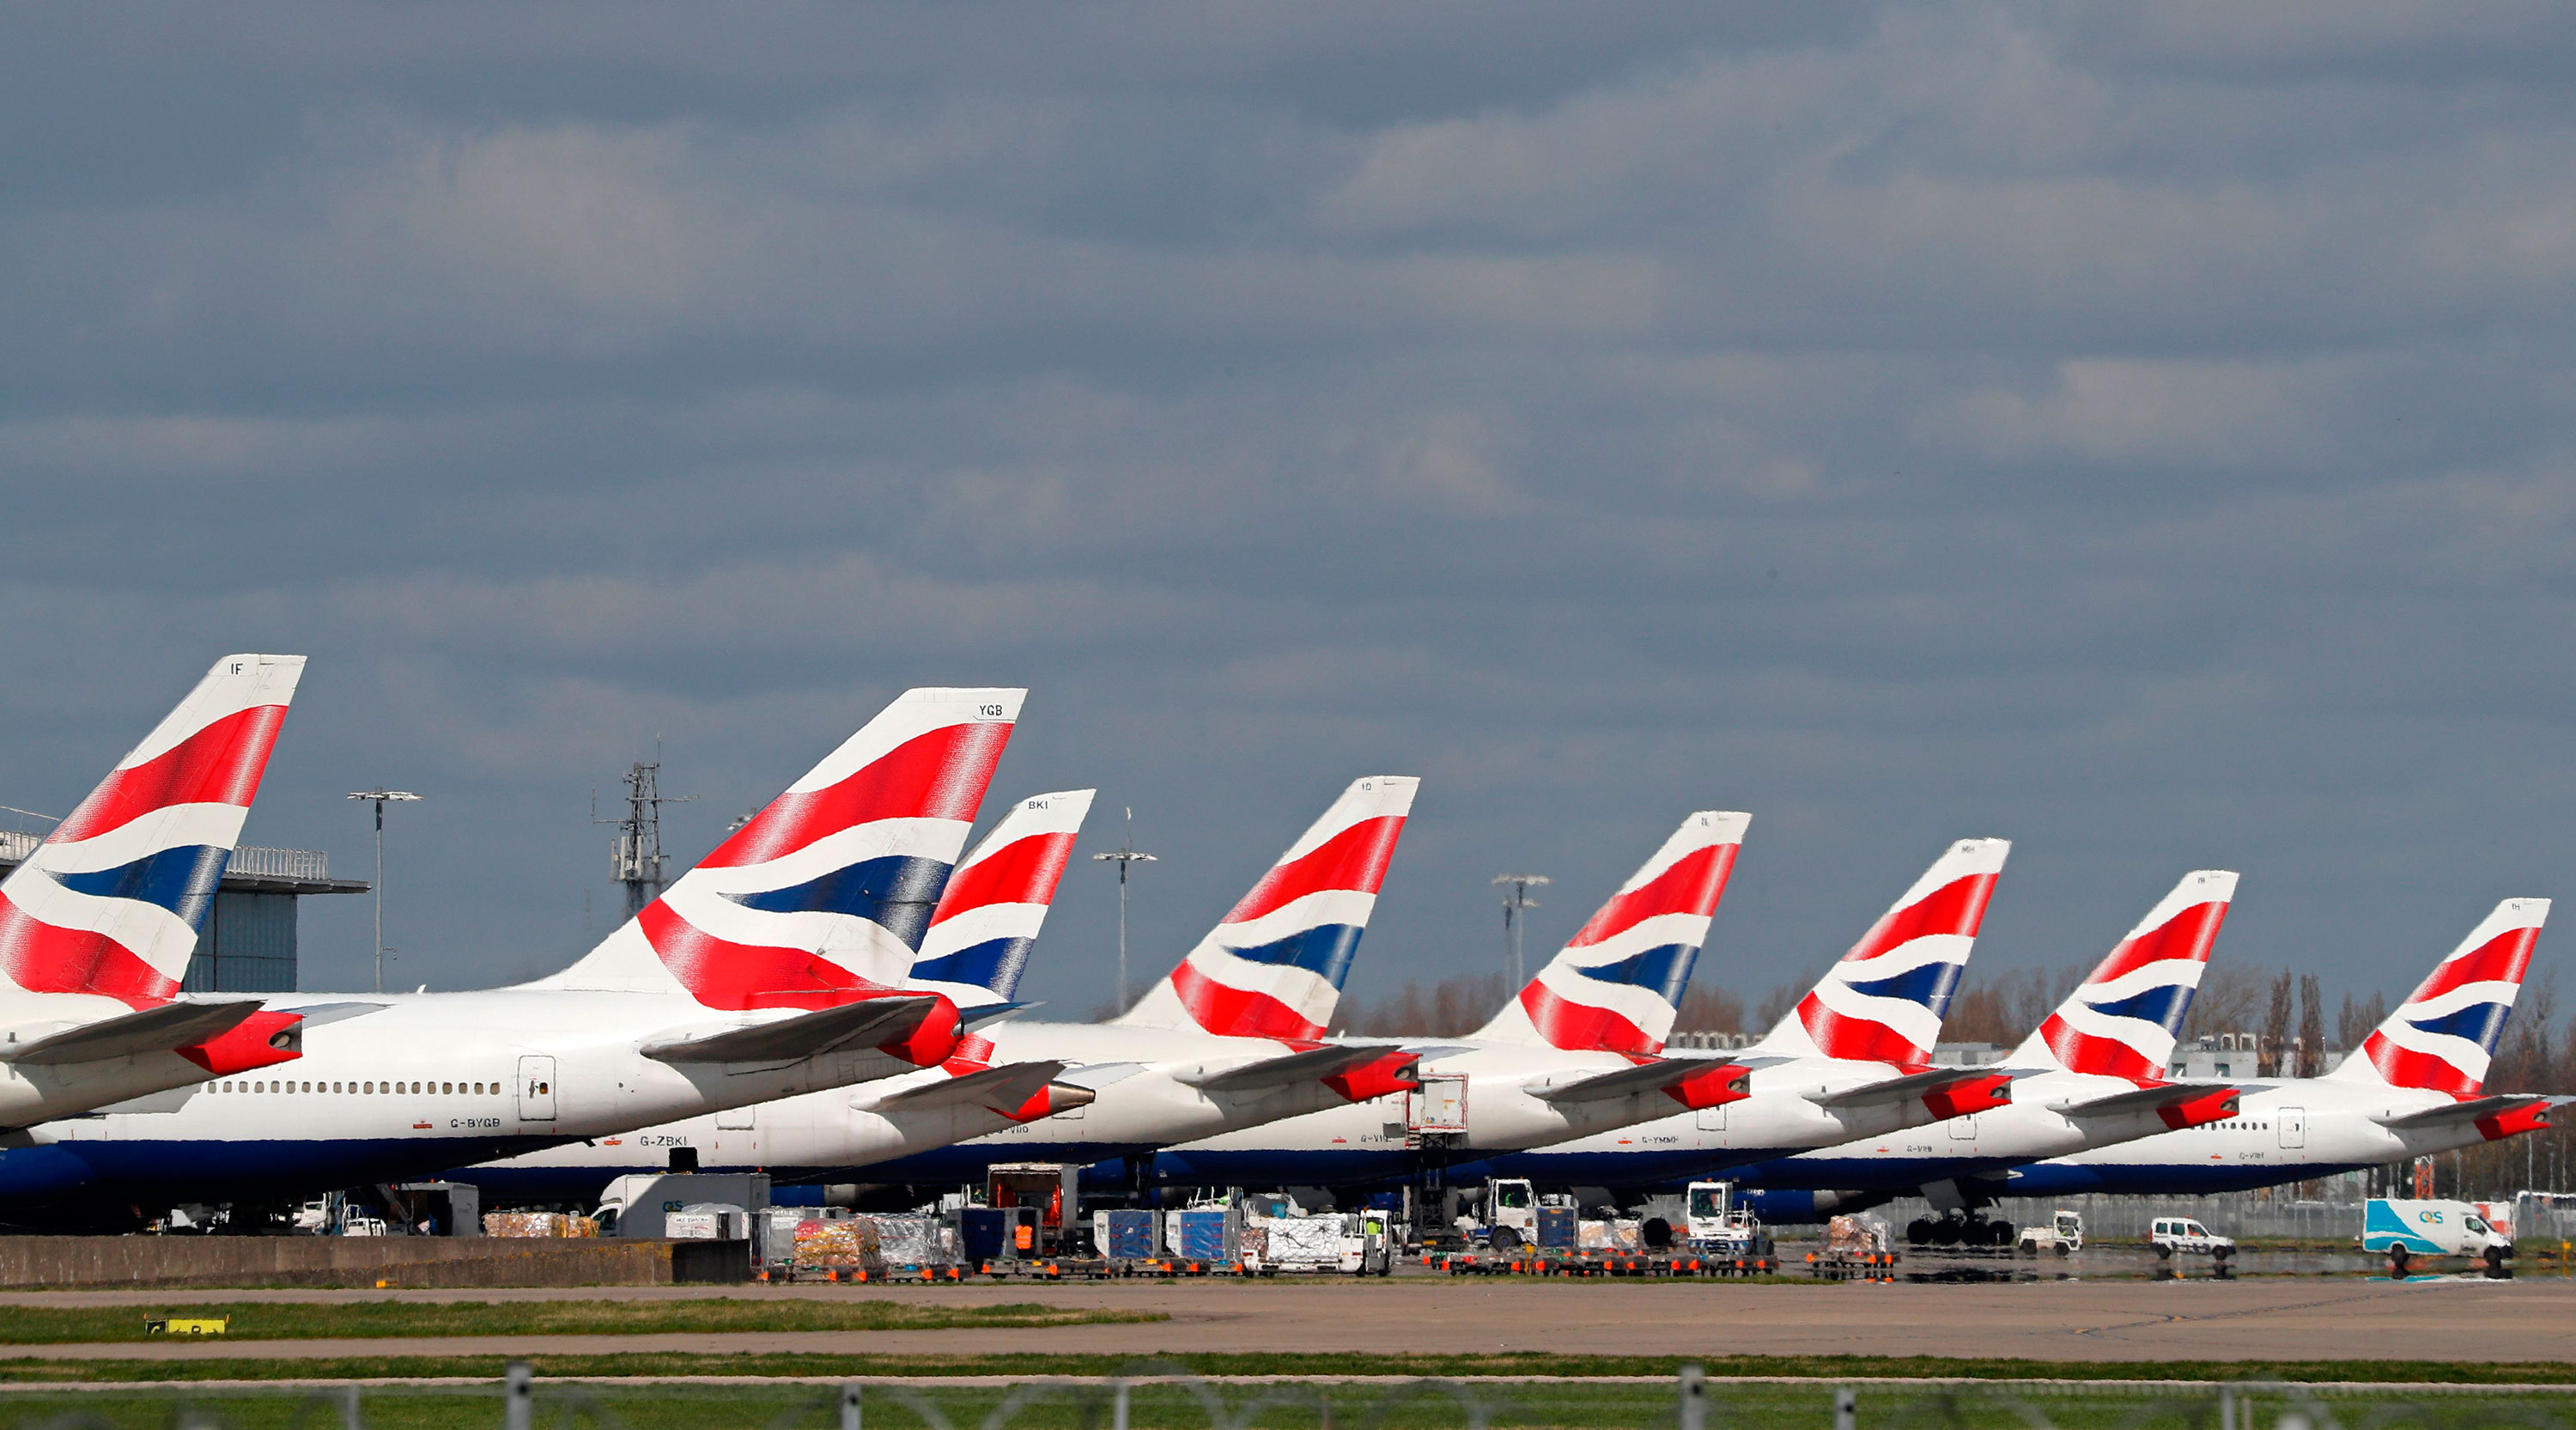 British Airways planes sit grounded at Heathrow airport in London on March 16.